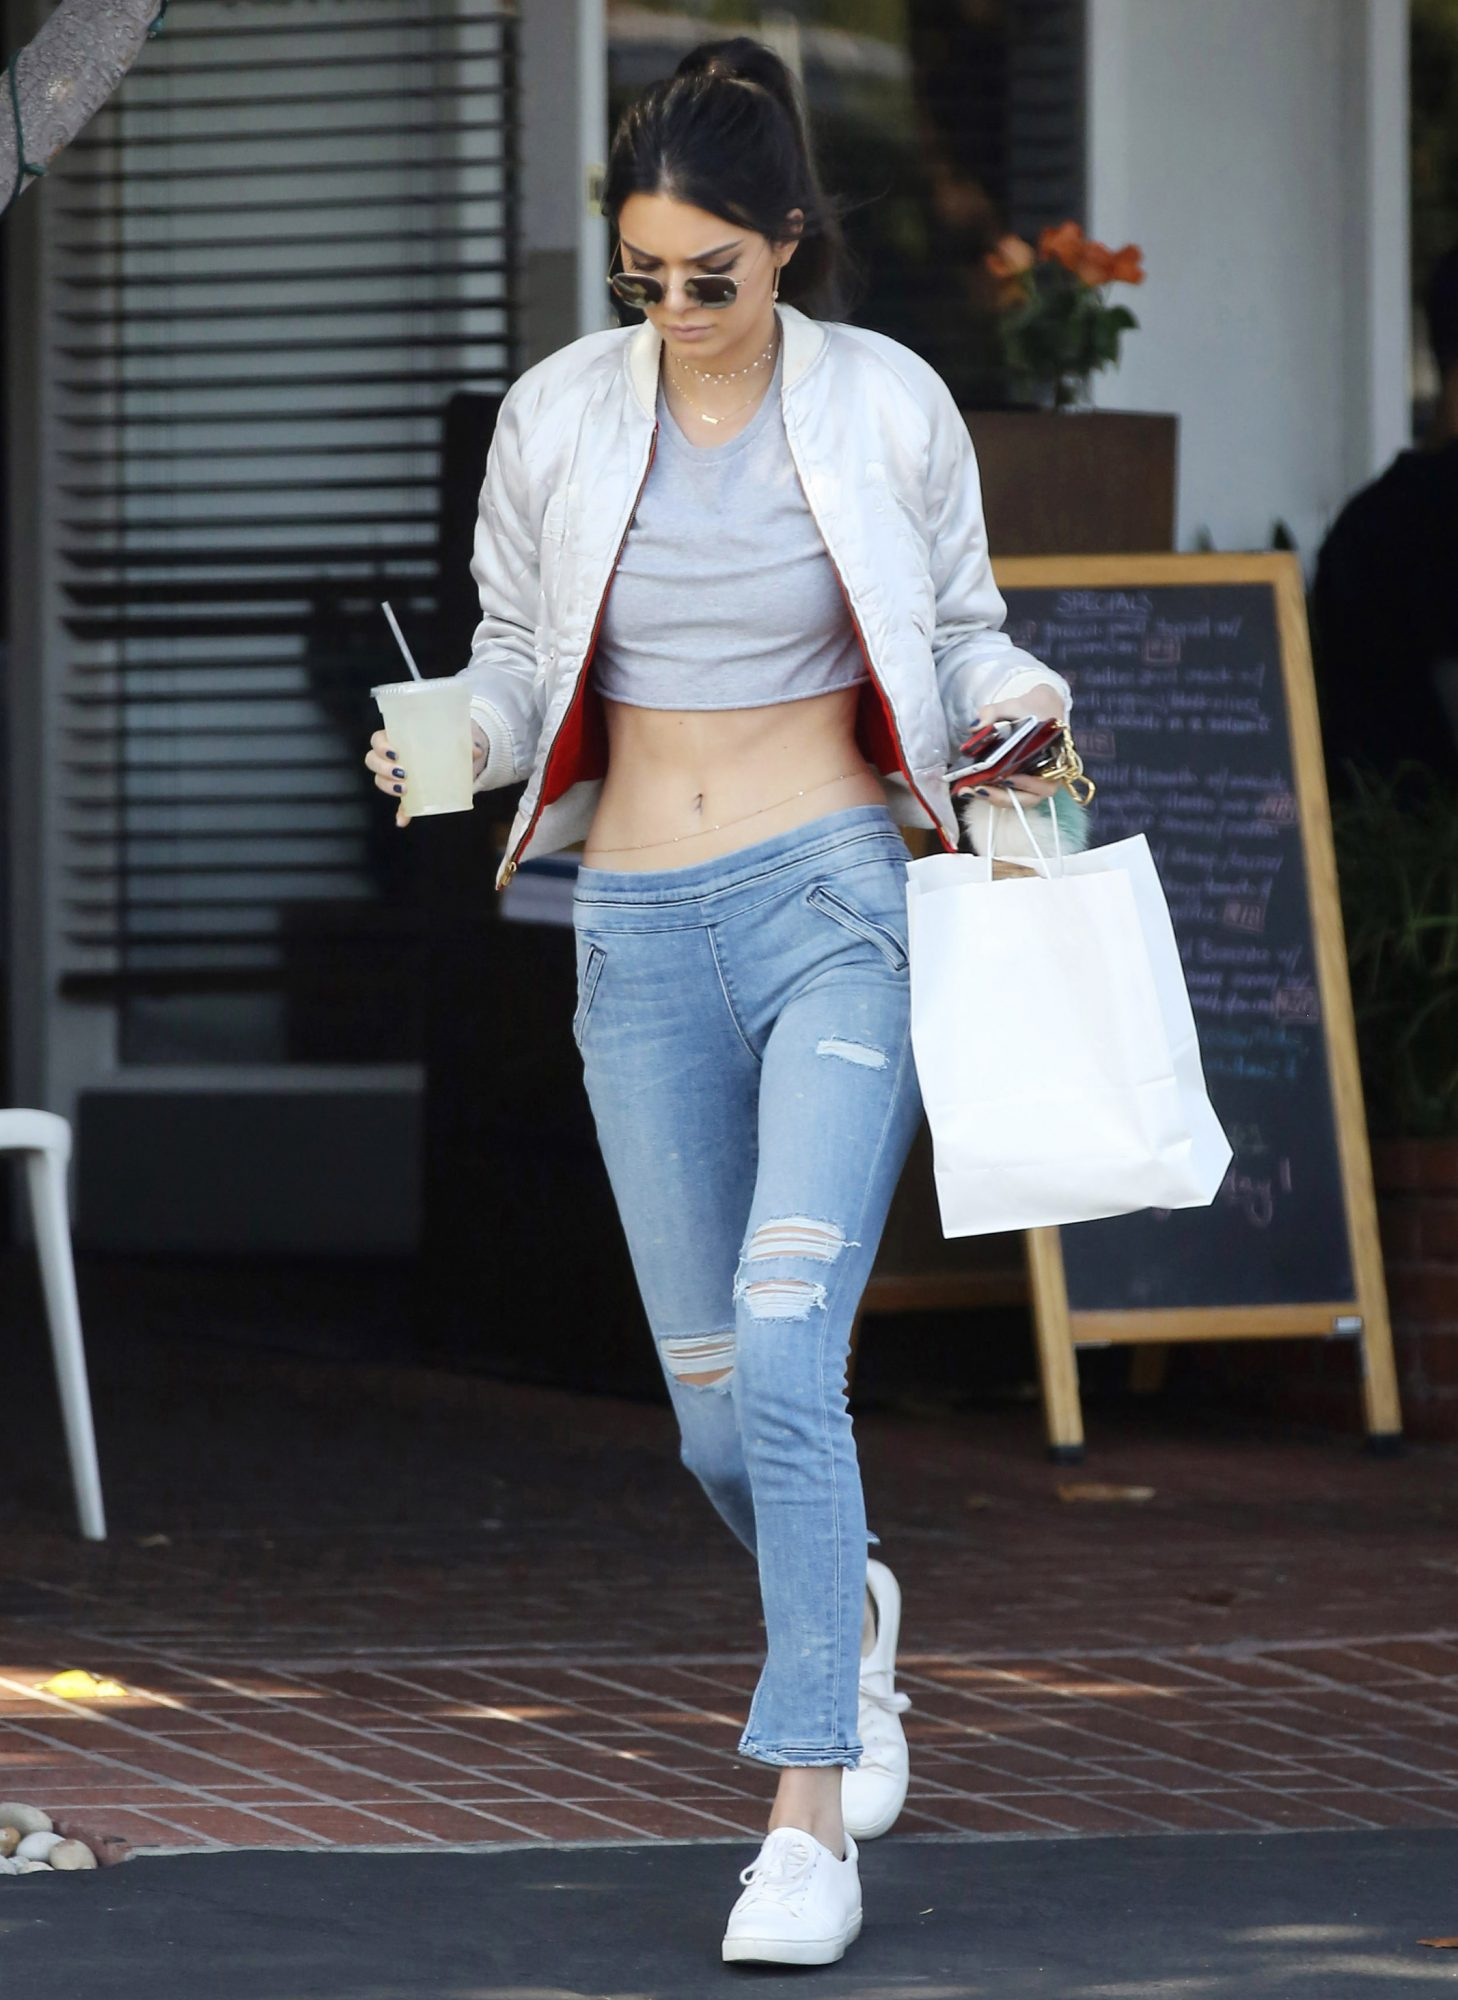 a1b854f38abcc Kendall Jenner s Chic Street Style